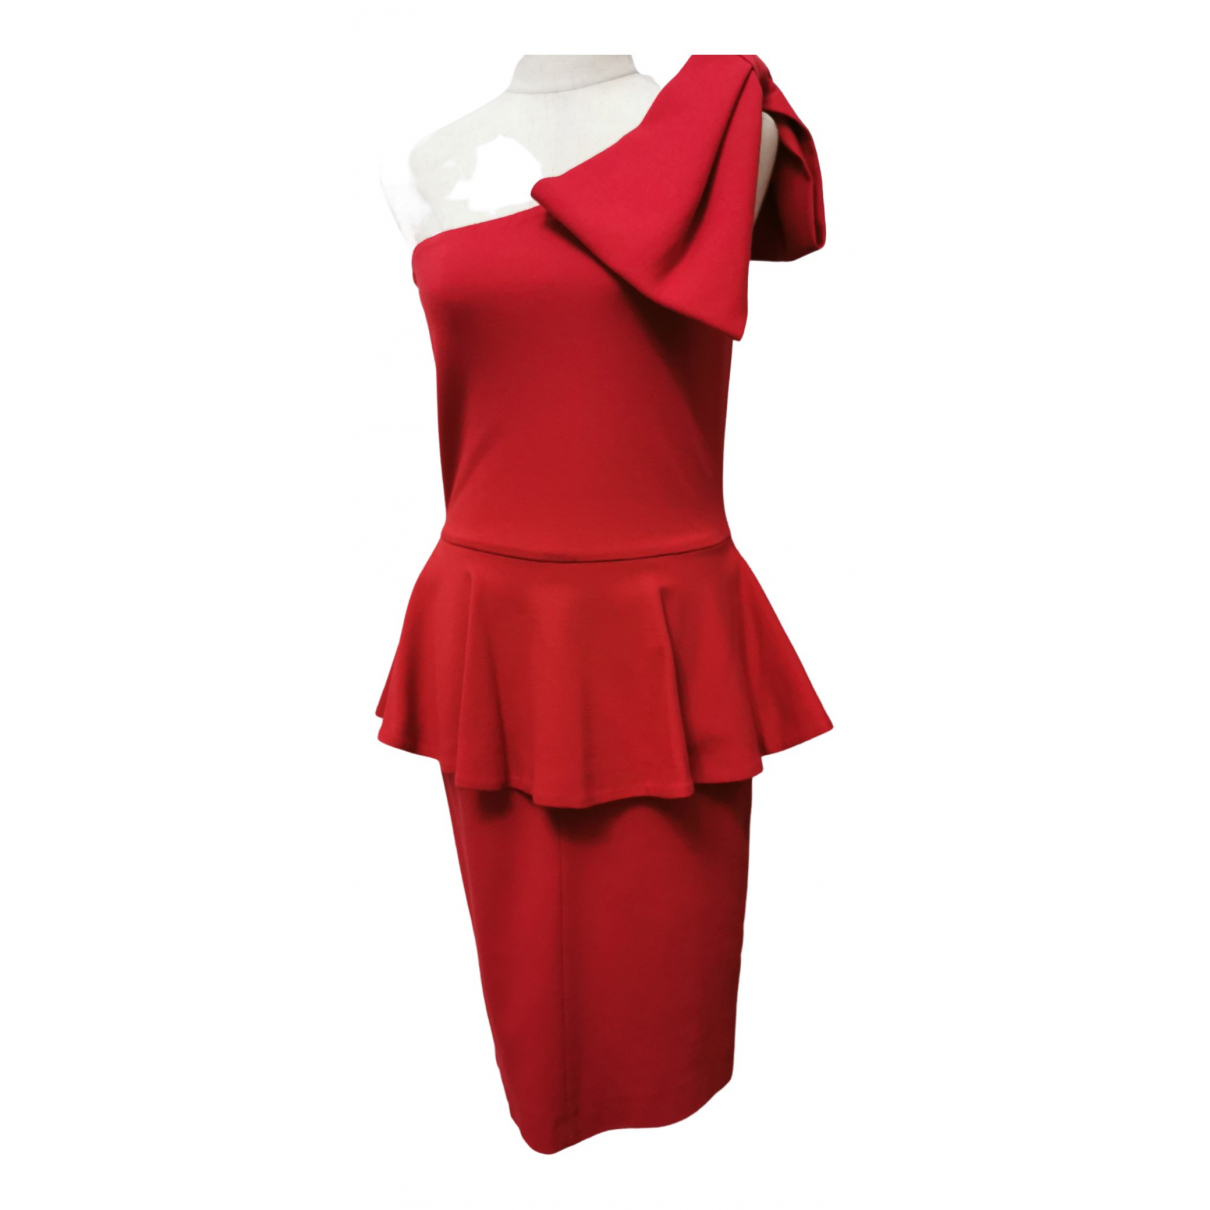 Msgm \N Red dress for Women 42 IT